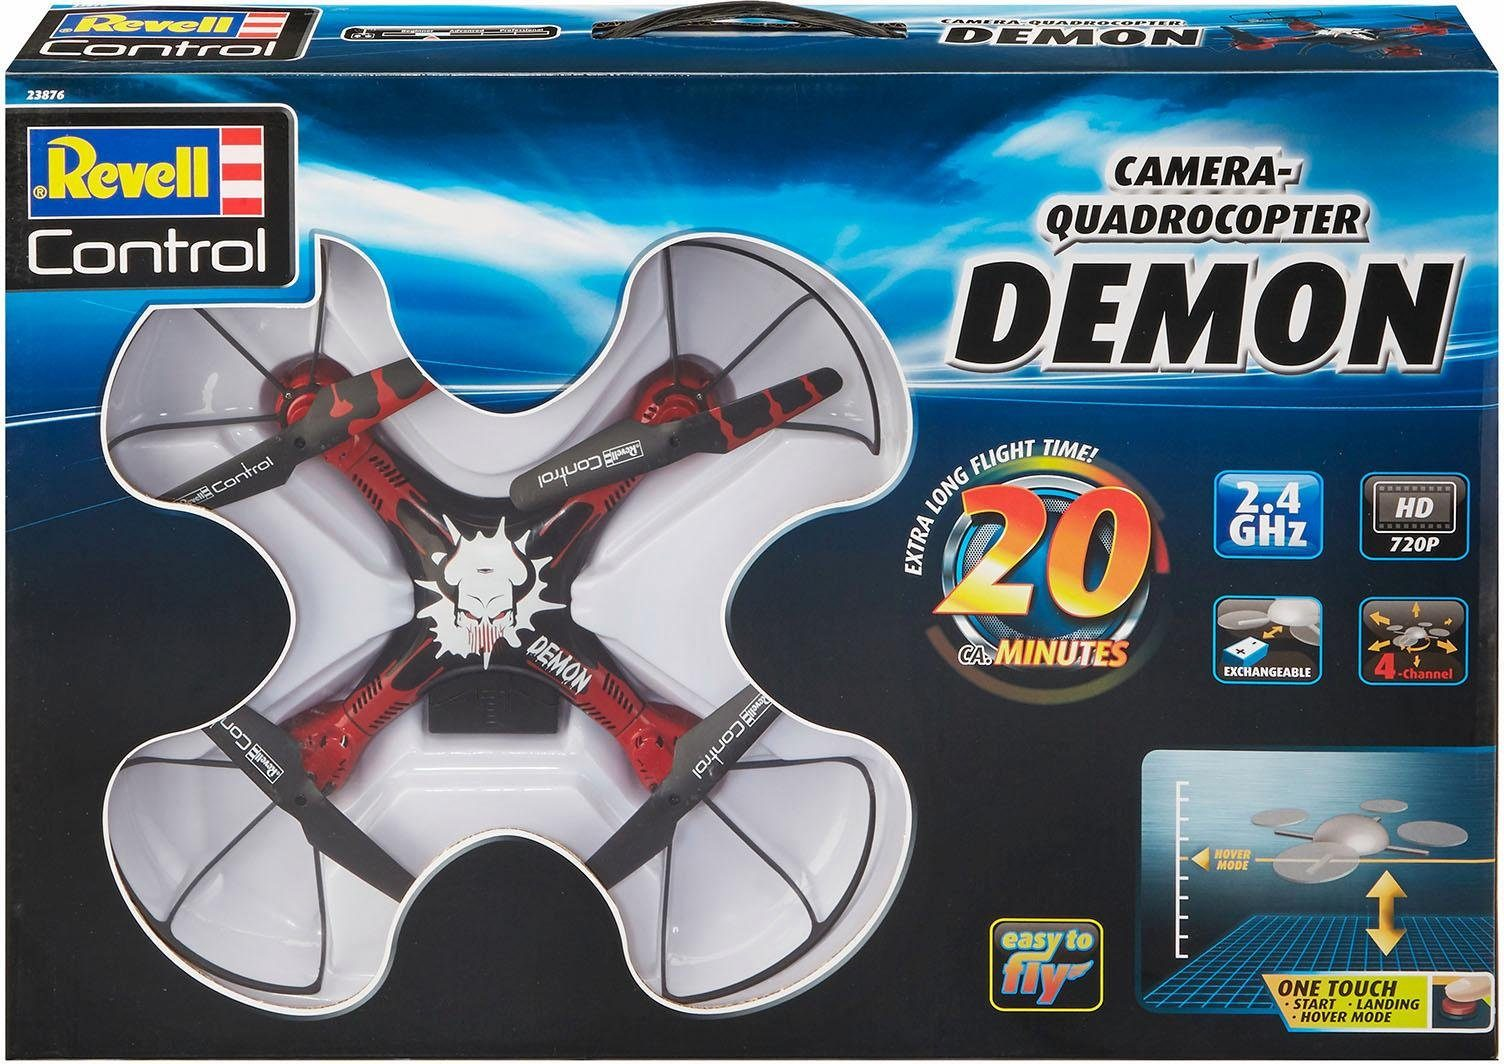 Revell RC Quadrocopter mit Kamera, »Revell control, Demon, 2,4 GHz« - broschei